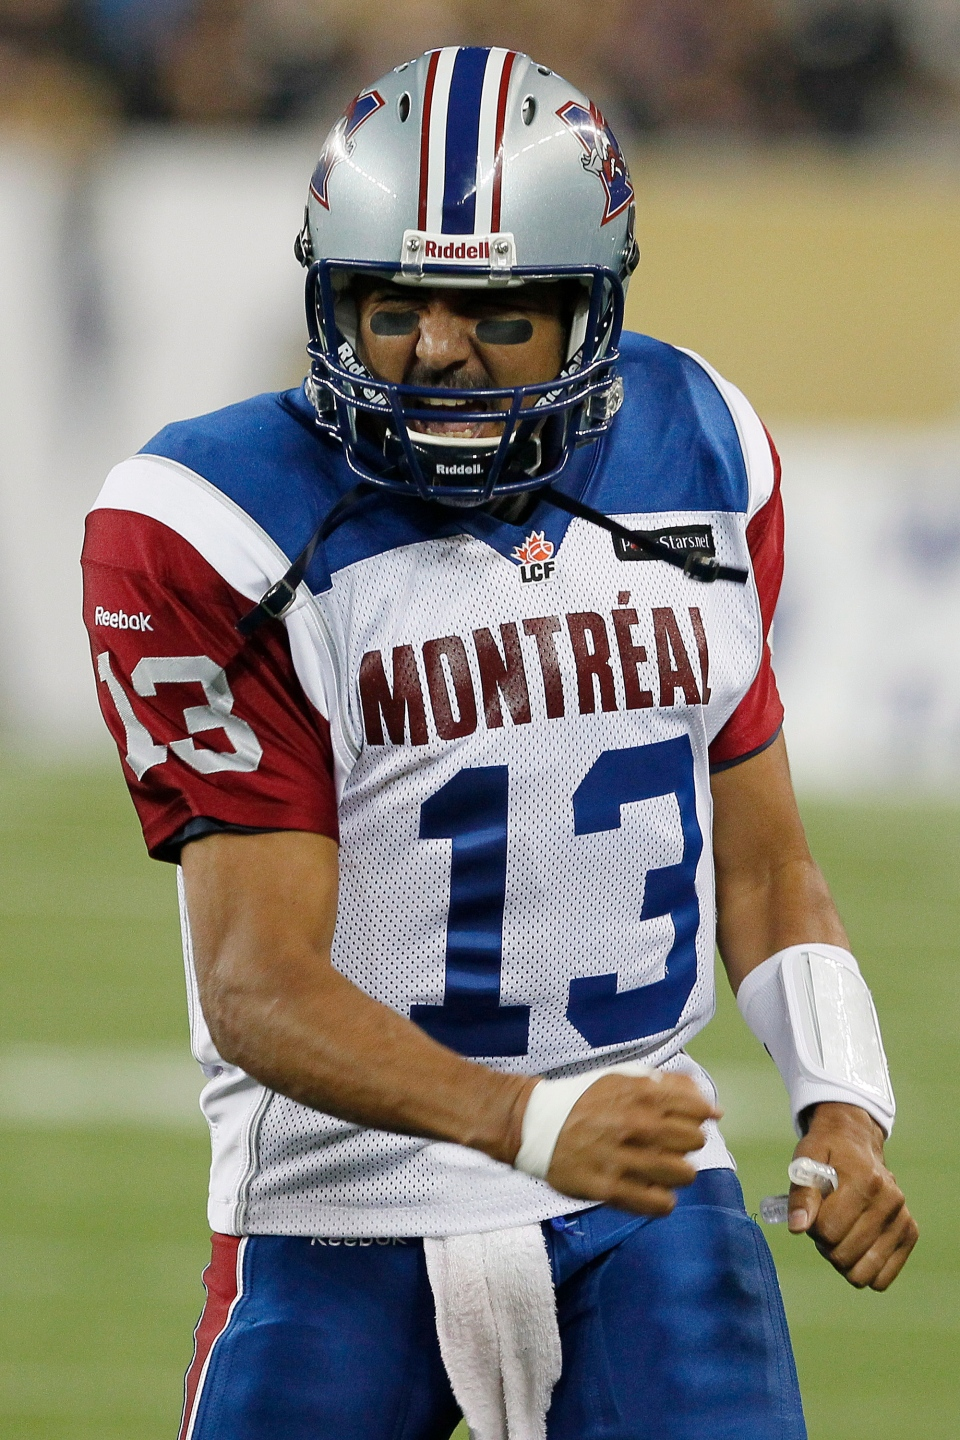 Montreal Alouettes quarterback Anthony Calvillo (13) celebrates a touchdown against the Winnipeg Blue Bombers during the second half of their CFL game at Investors Group Field in Winnipeg Thursday, June 27, 2013. THE CANADIAN PRESS/John Woods